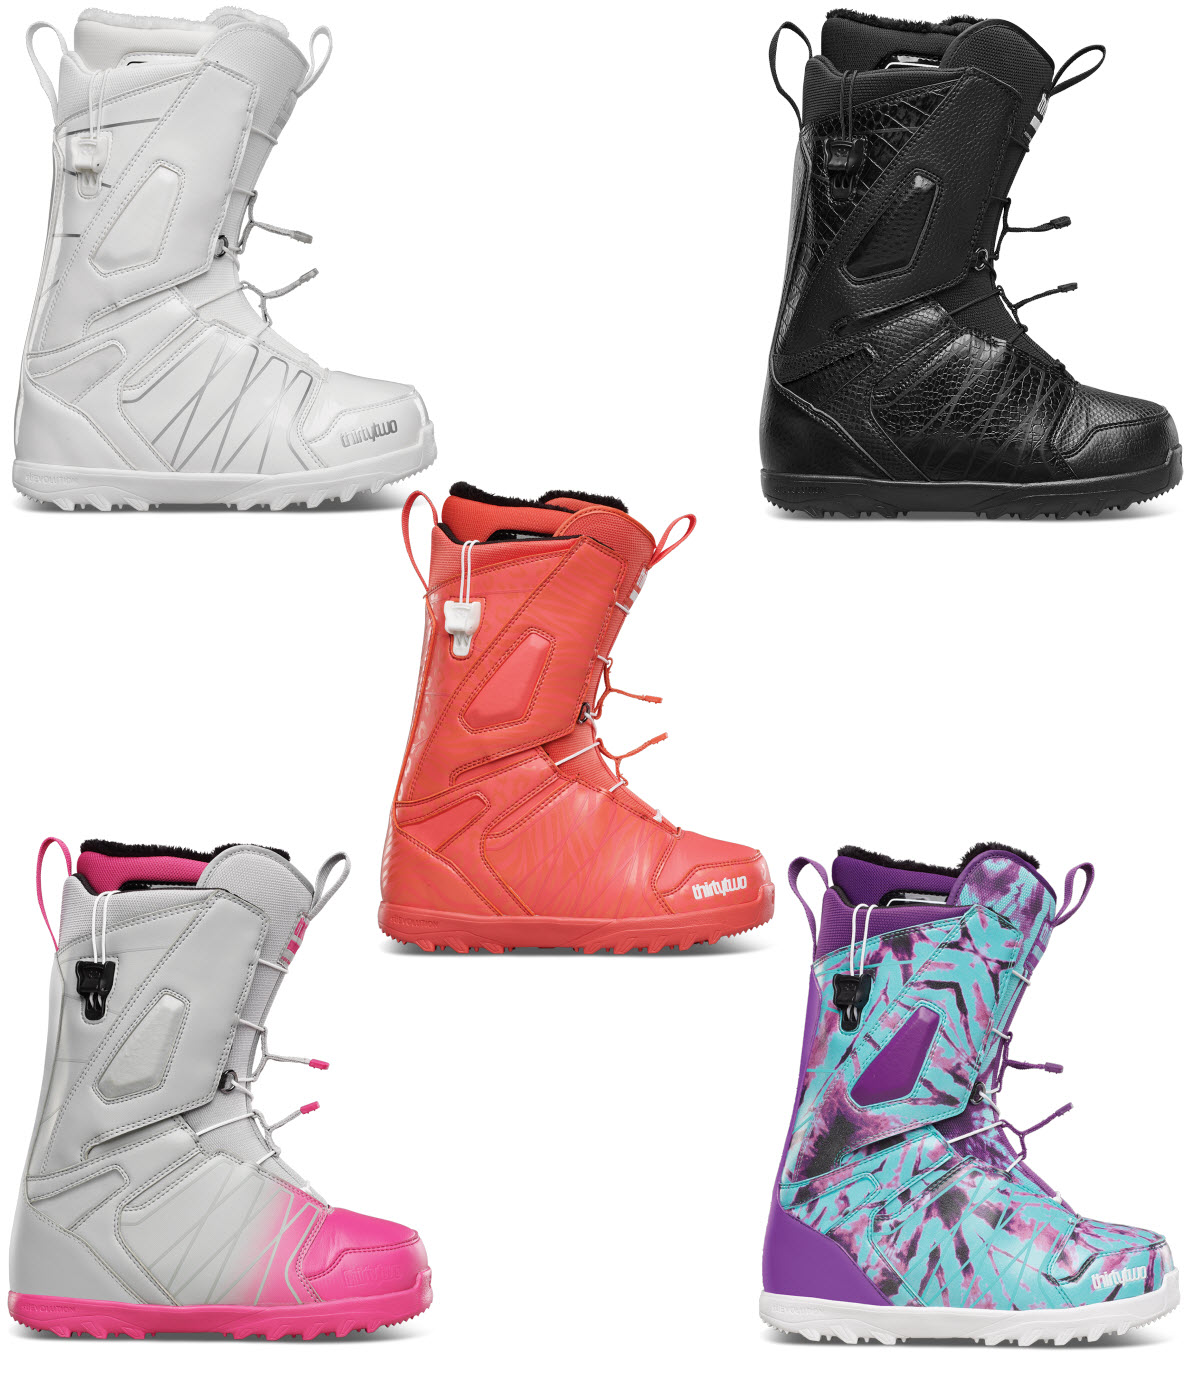 thirtytwo snowboard boots womens lashed ft fast track